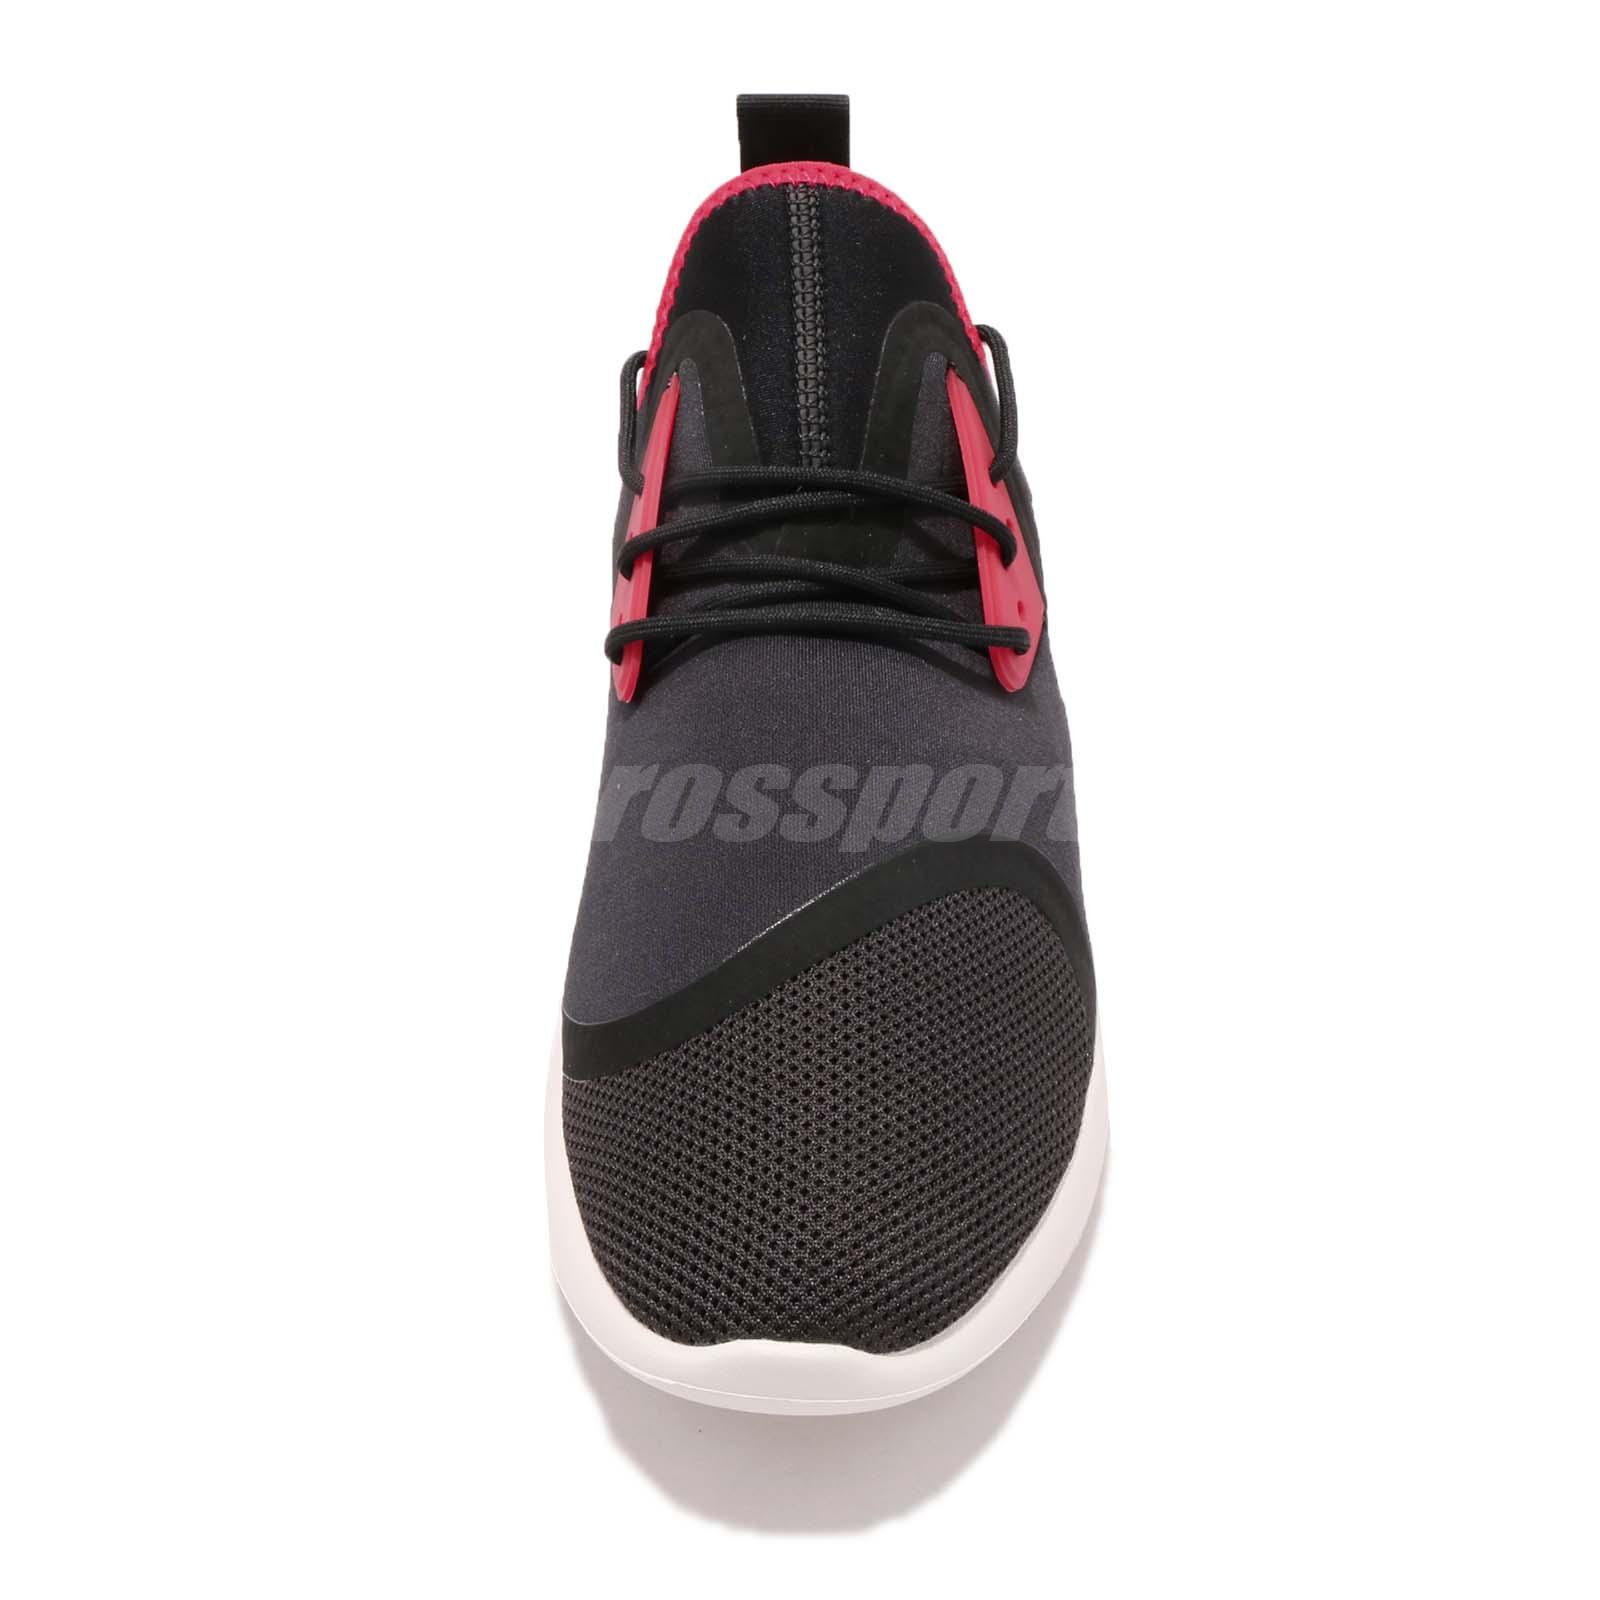 Nike Lunarcharge Essential Black Red Men Running Shoes Sneakers ... 8b5648668